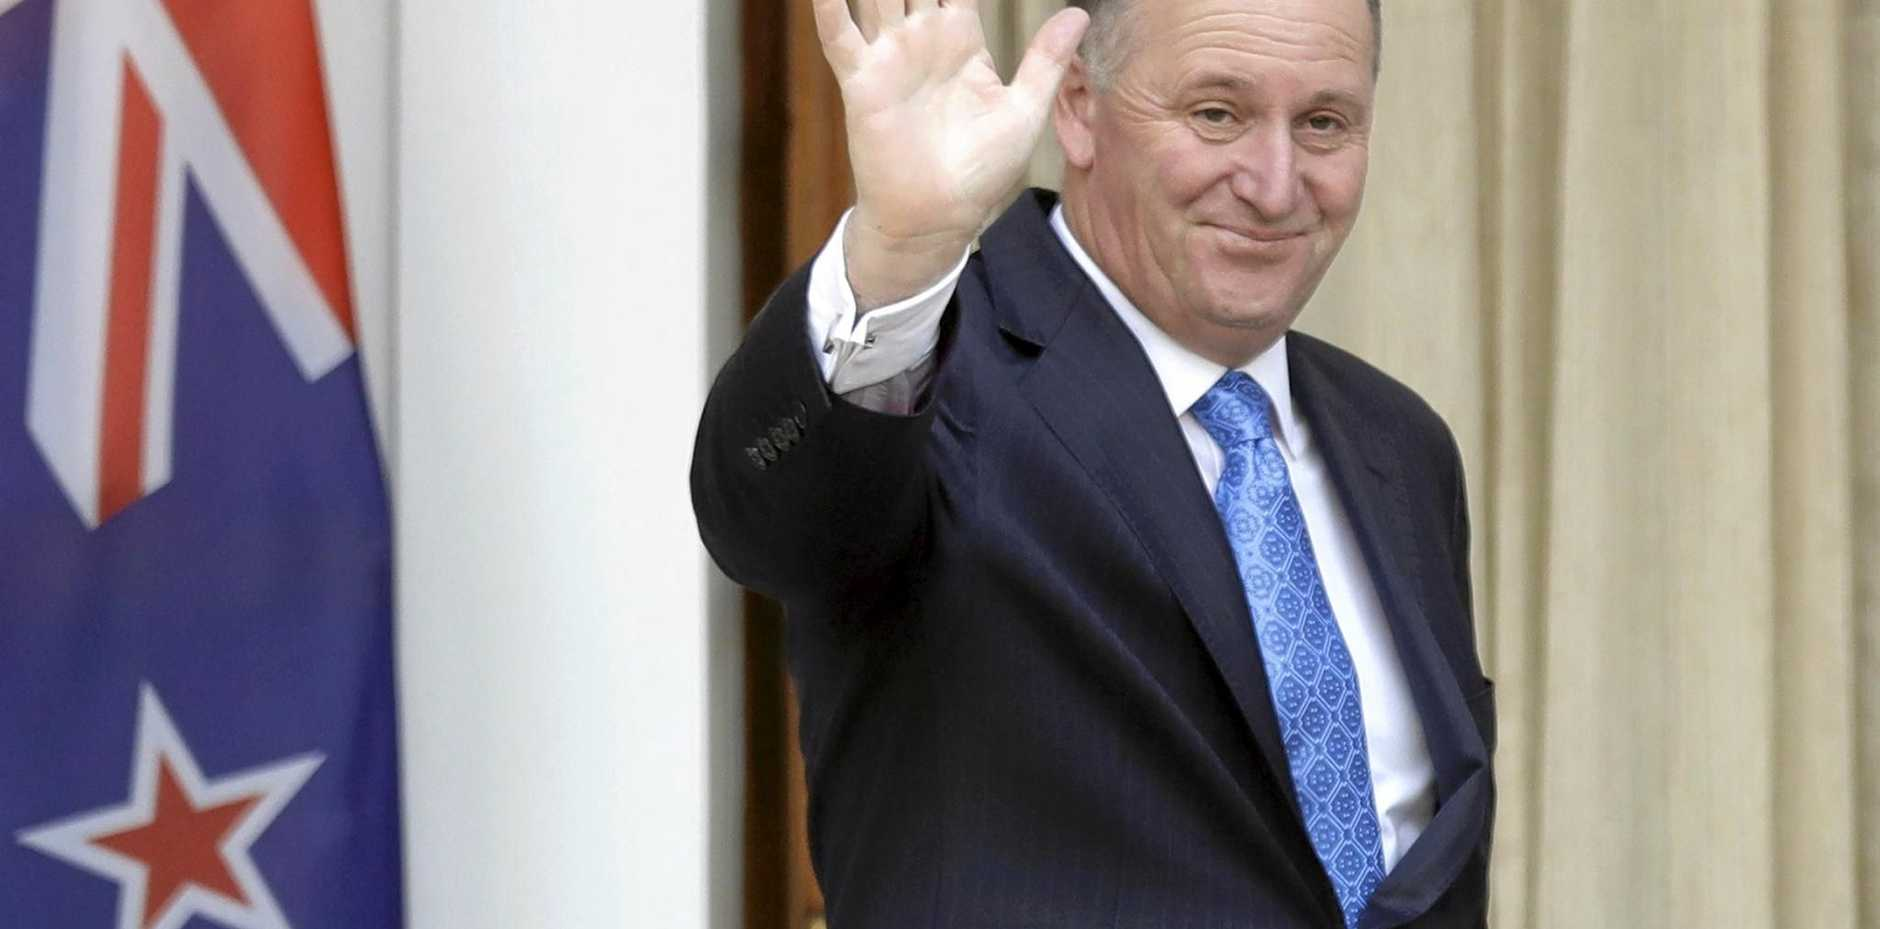 New Zealand Prime Minister John Key will hand over the reins of power on Monday.